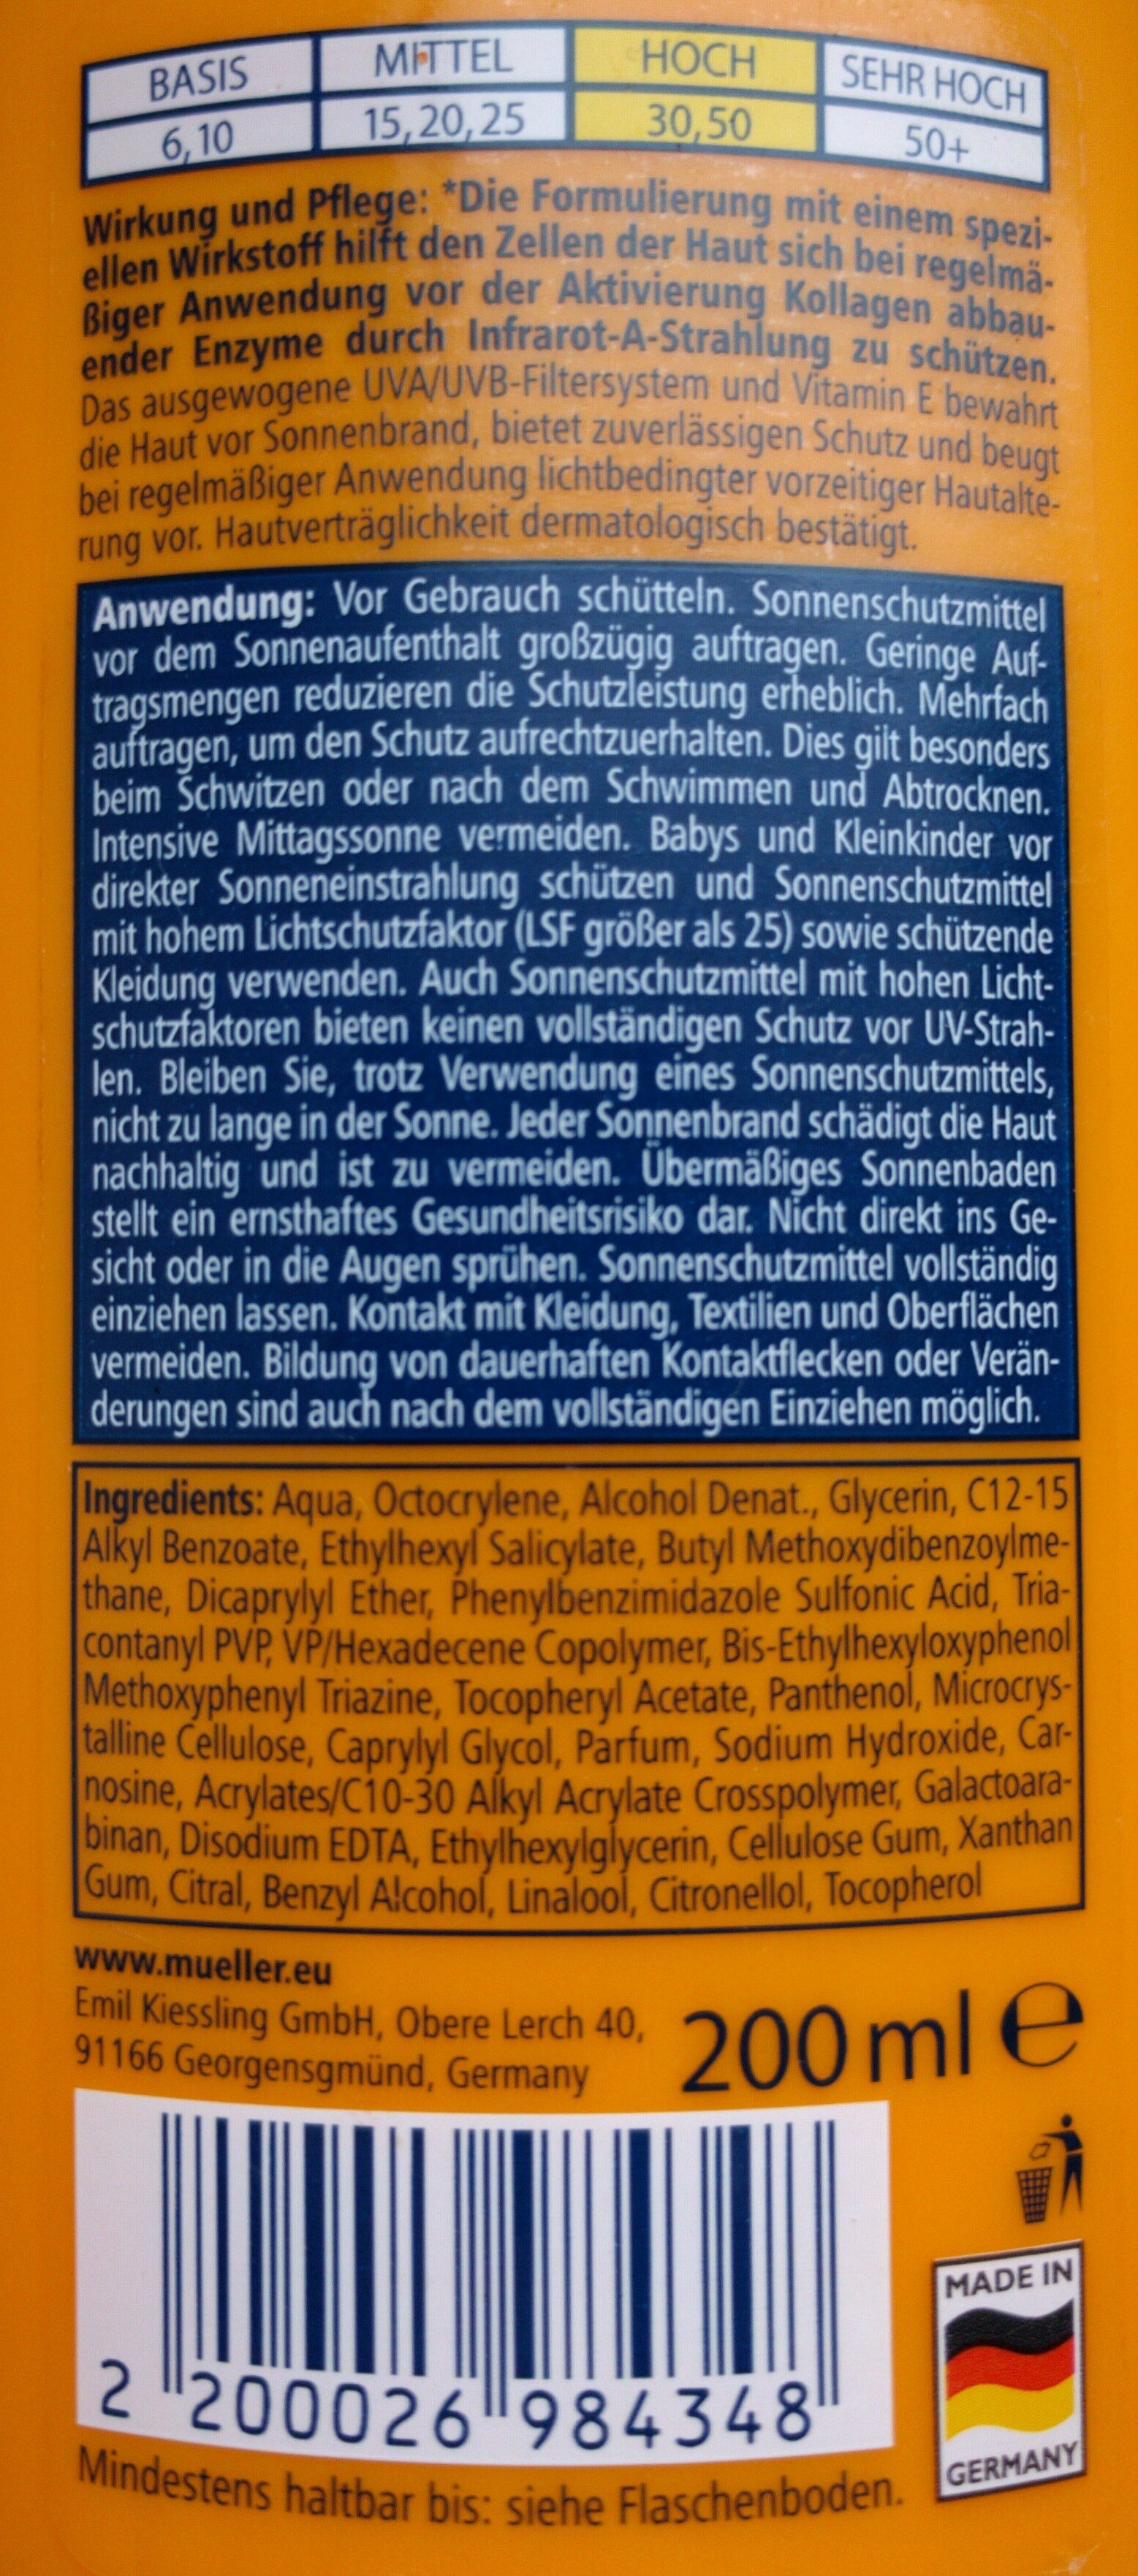 Sonnenspray 30 hoch - Ingredients - de